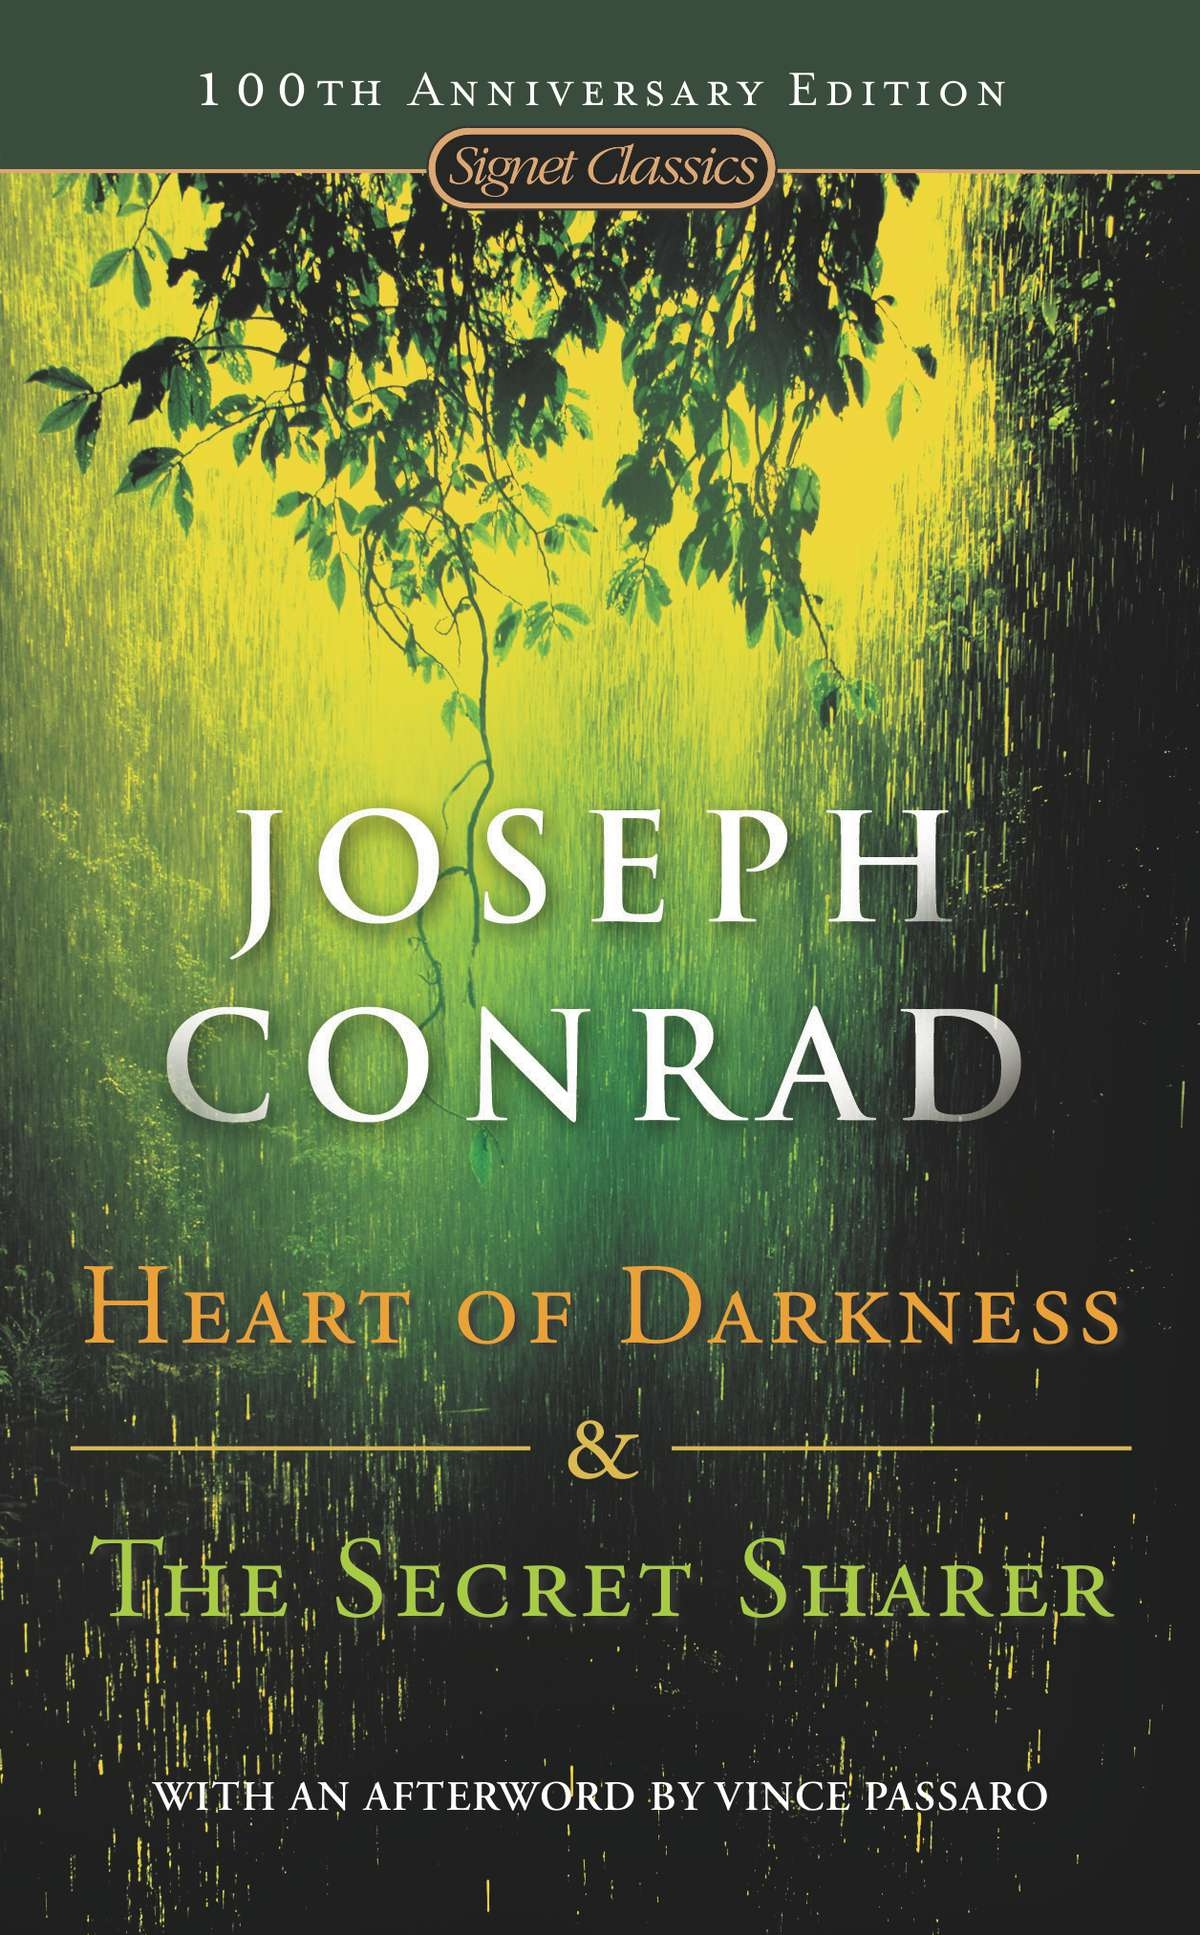 conrads intent in heart of darkness Heart of darkness begins and ends in the uk though it recounts marlow's voyage through belgian congo in search of kurtz and is forever linked to the african continent, conrad's novella begins.